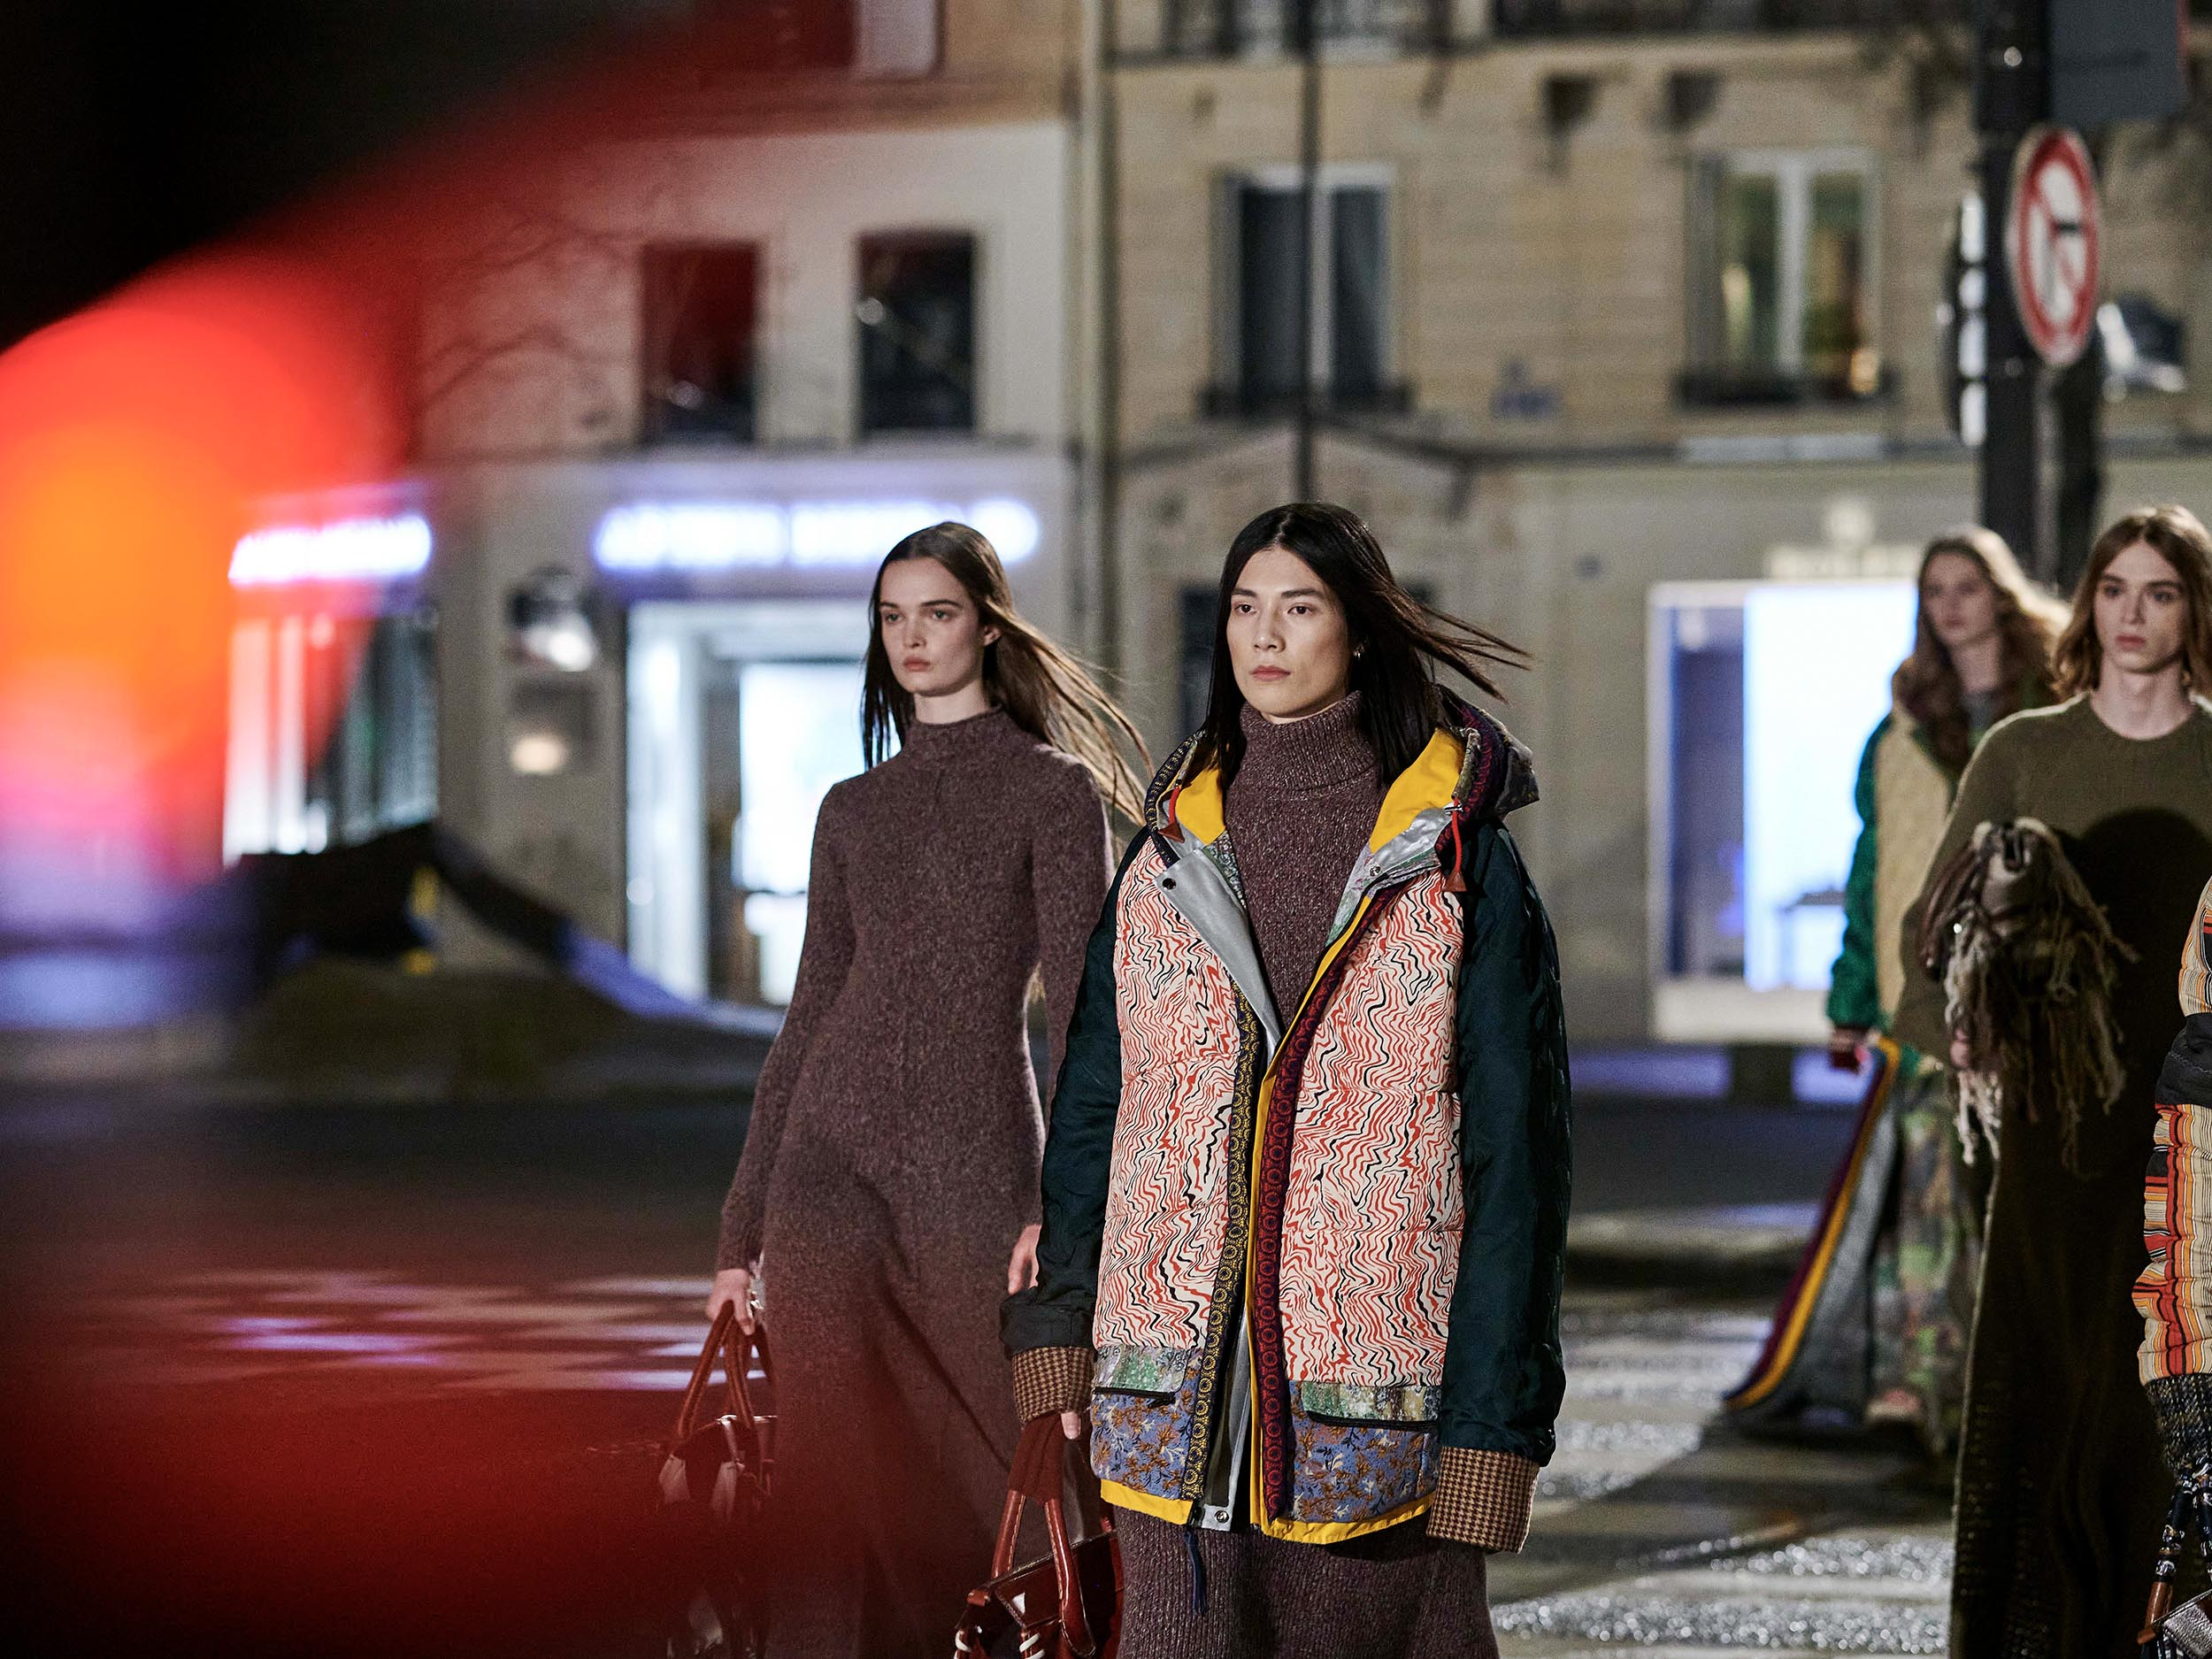 At Chloé, Gabriela Hearst makes a colorful, patchwork case for walking sustainability